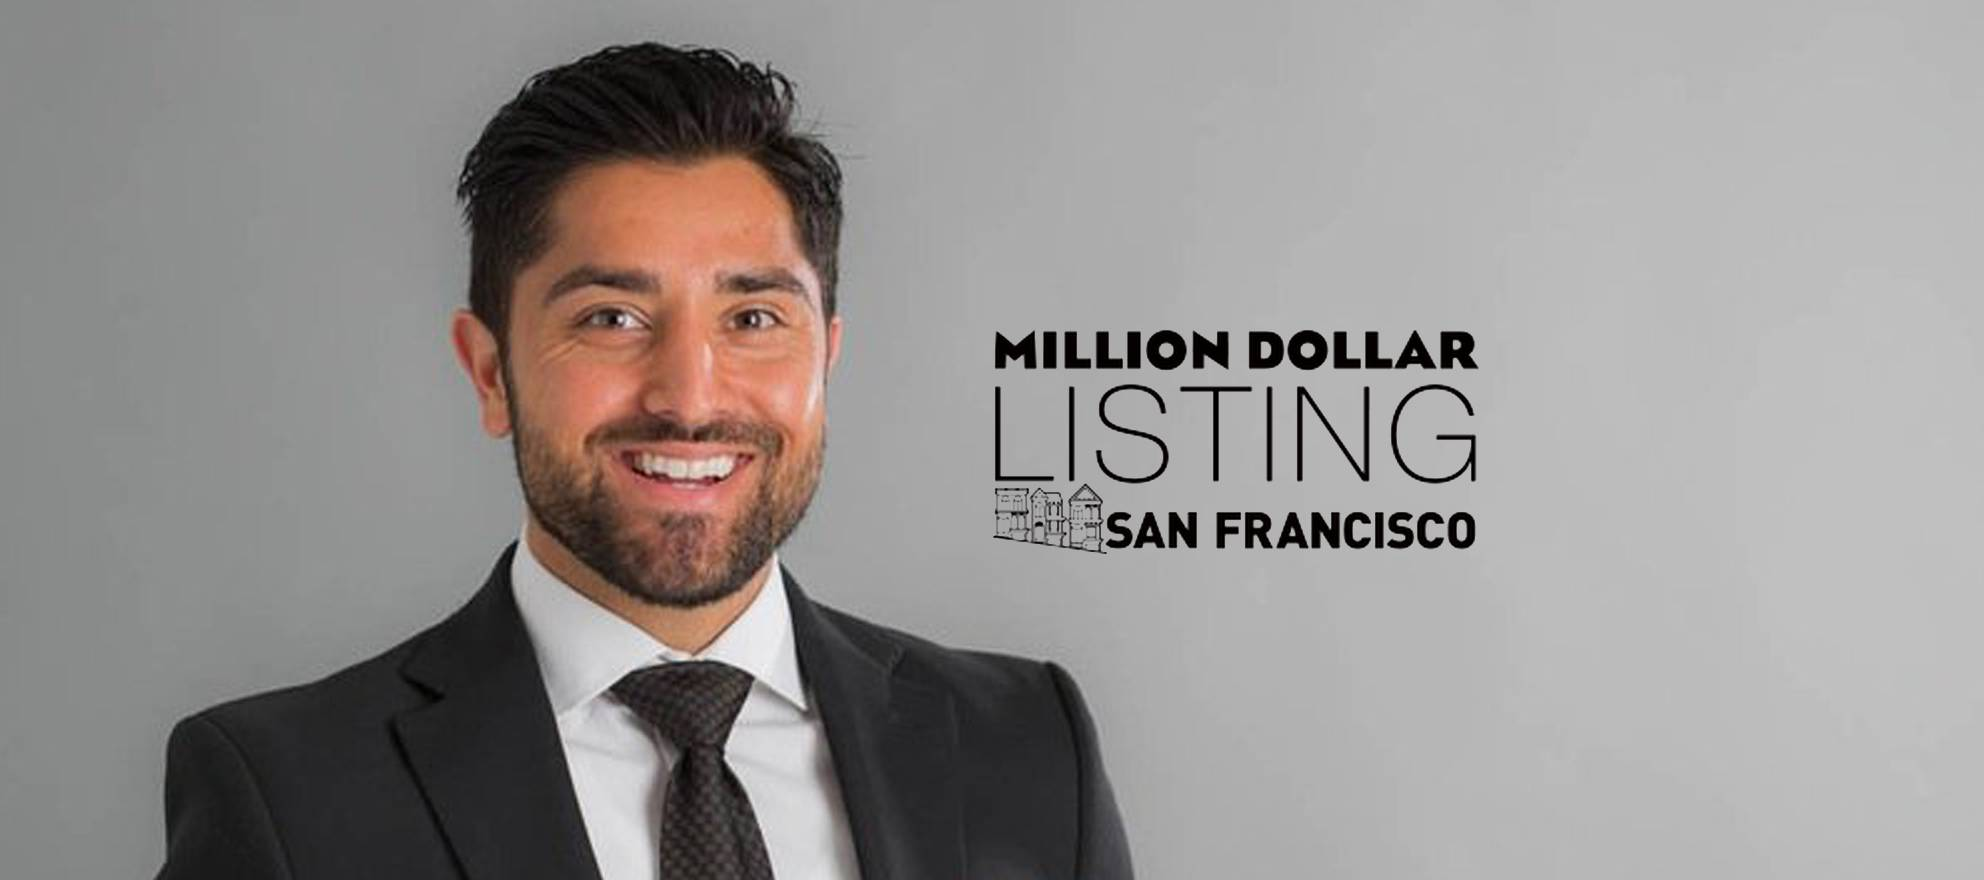 A conversation with Roh Habibi from 'Million Dollar Listing San Francisco'